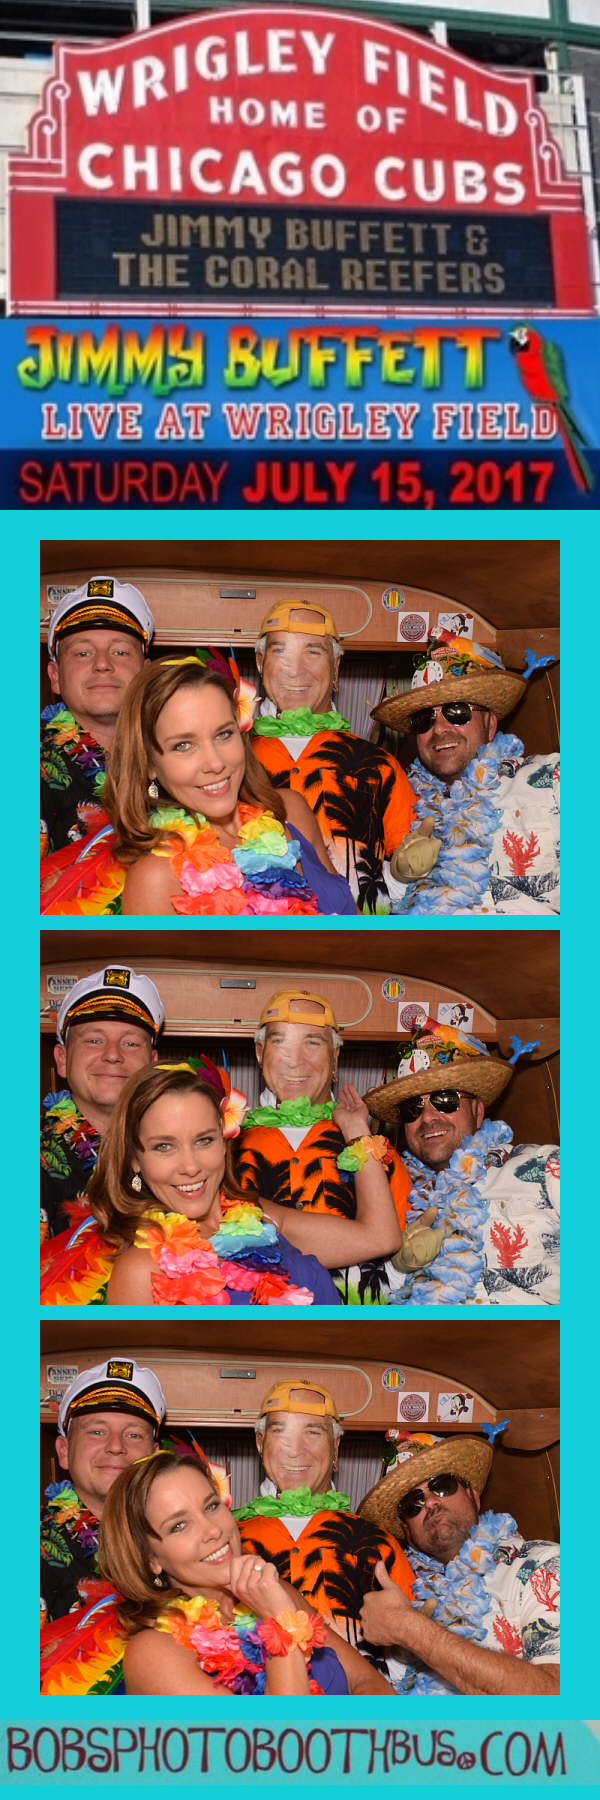 Jimmy Buffett final photo strip graphic_50.jpg